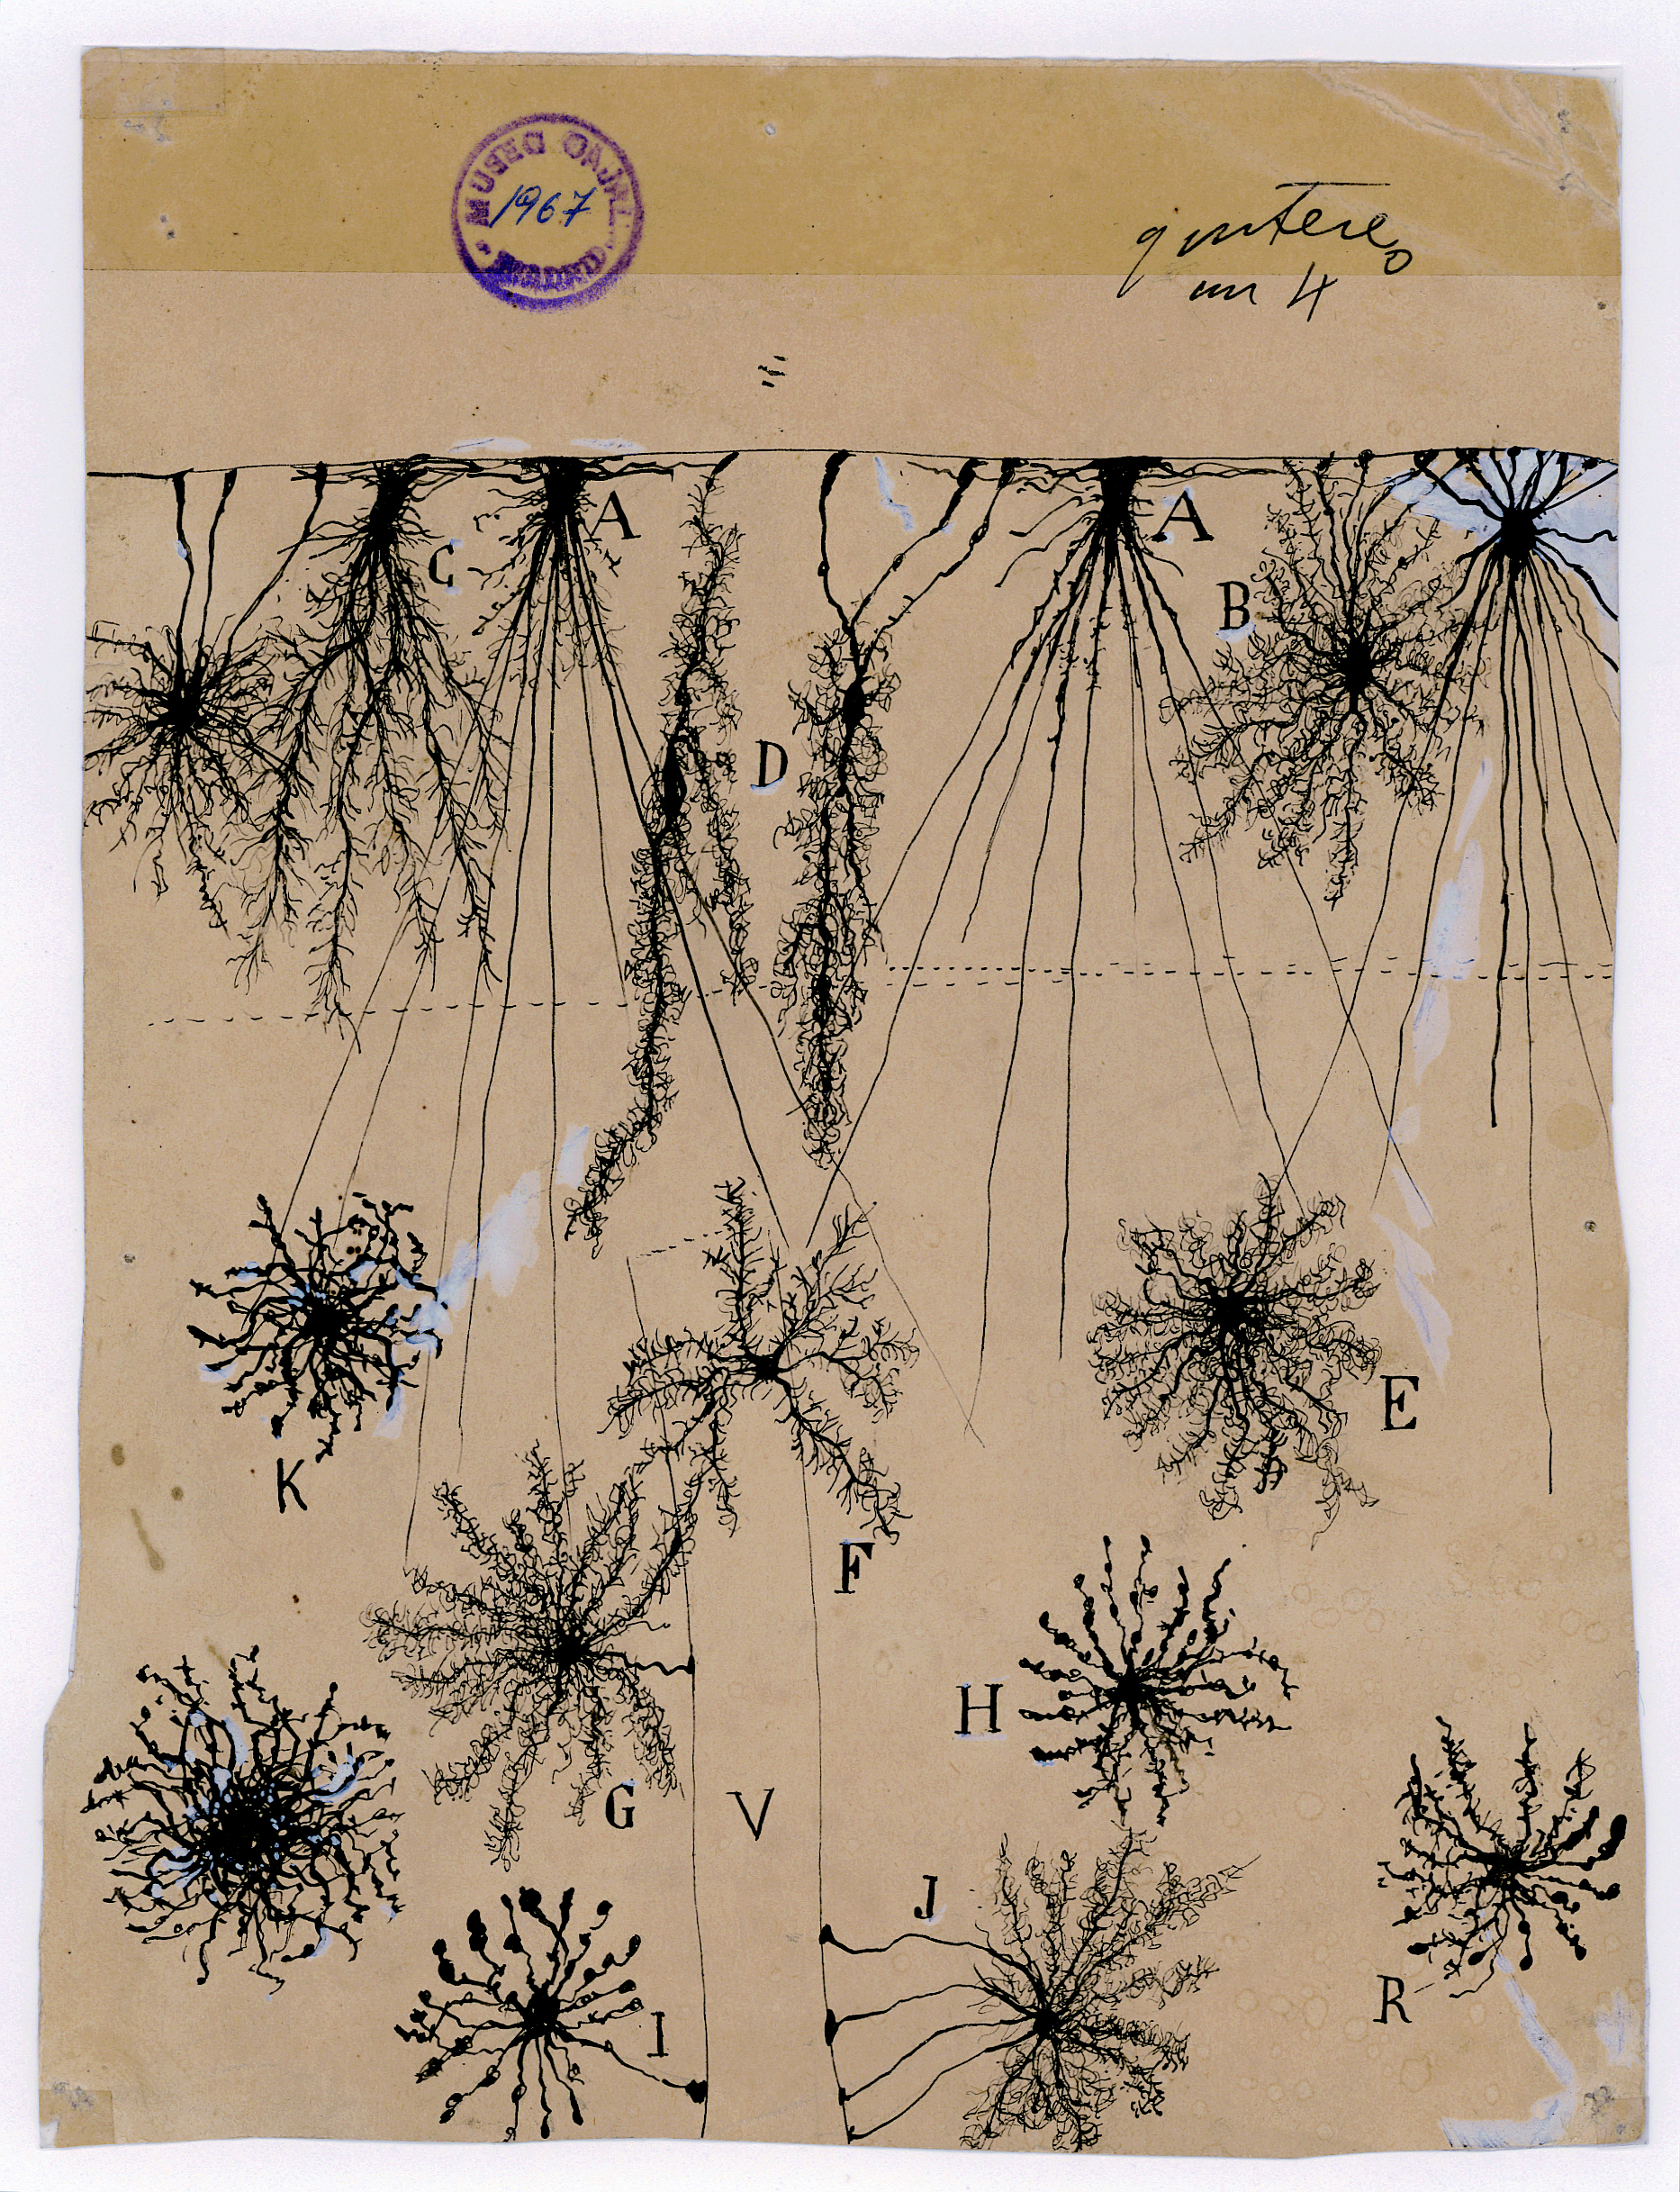 Santiago Ramón y Cajal, glial cells of the cerebral cortex of a child, 1904, ink and pencil on paper. Courtesy of Instituto Cajal (CSIC).